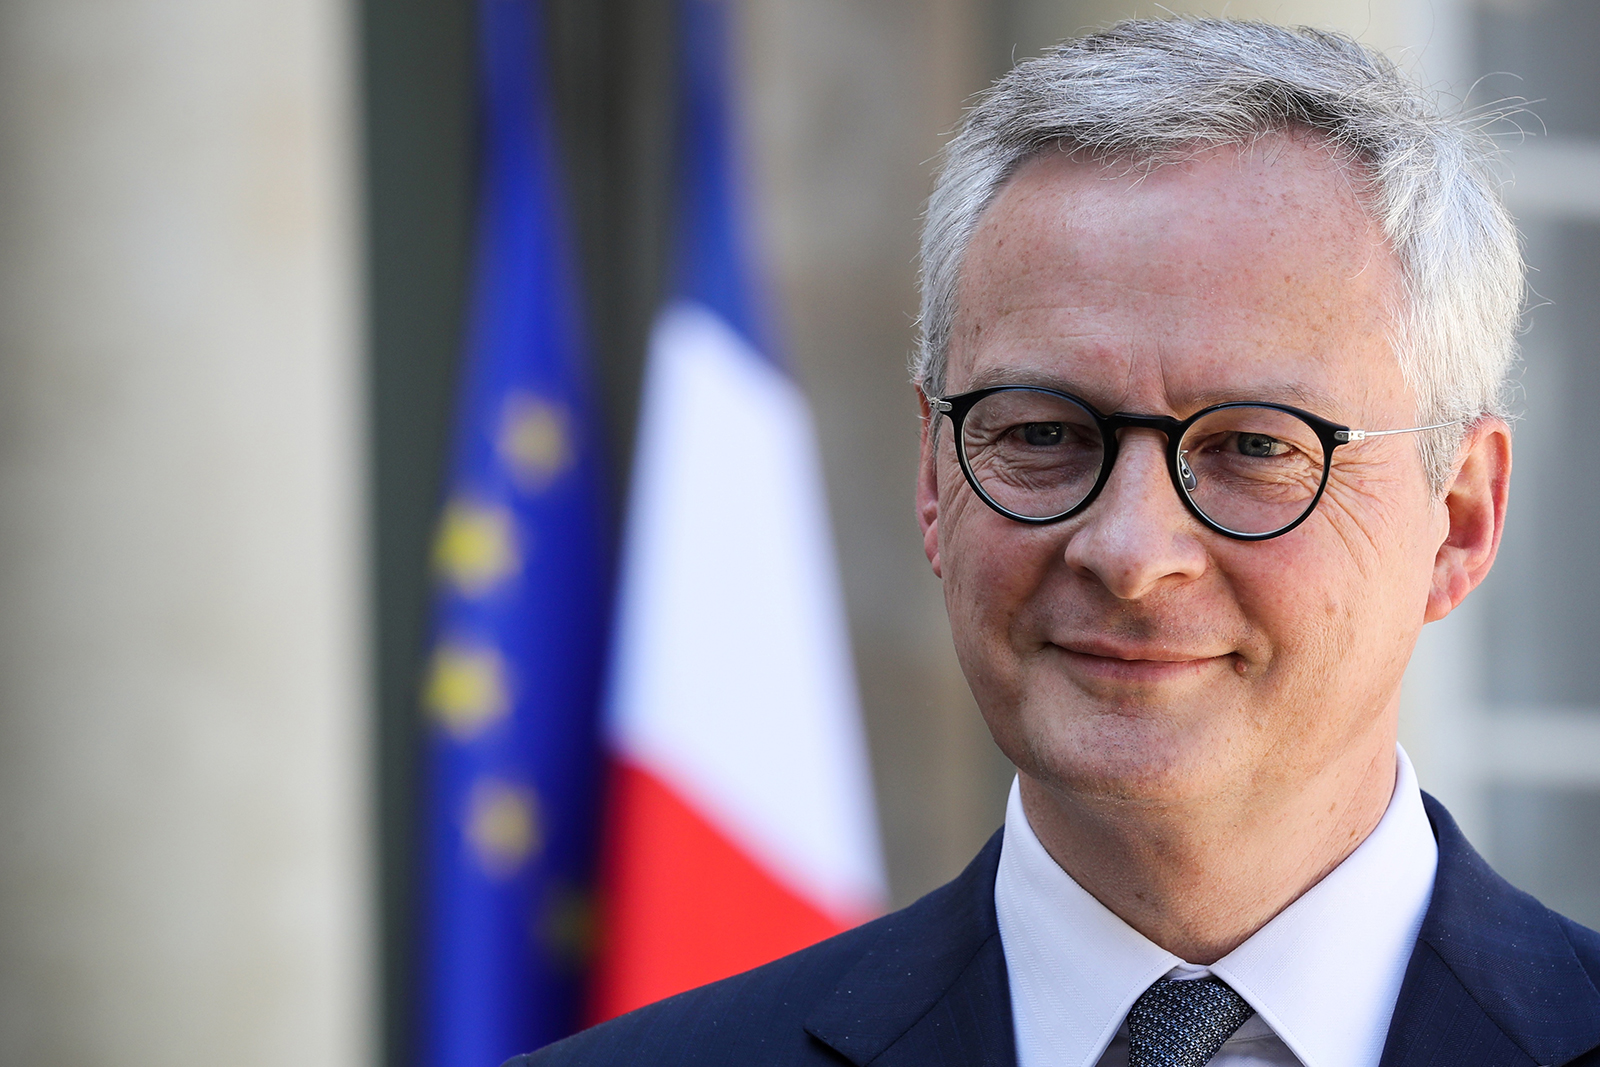 French Economy and Finance Minister Bruno Le Maire arrives for press briefing at the Elysee Palace in Paris, on April 24.